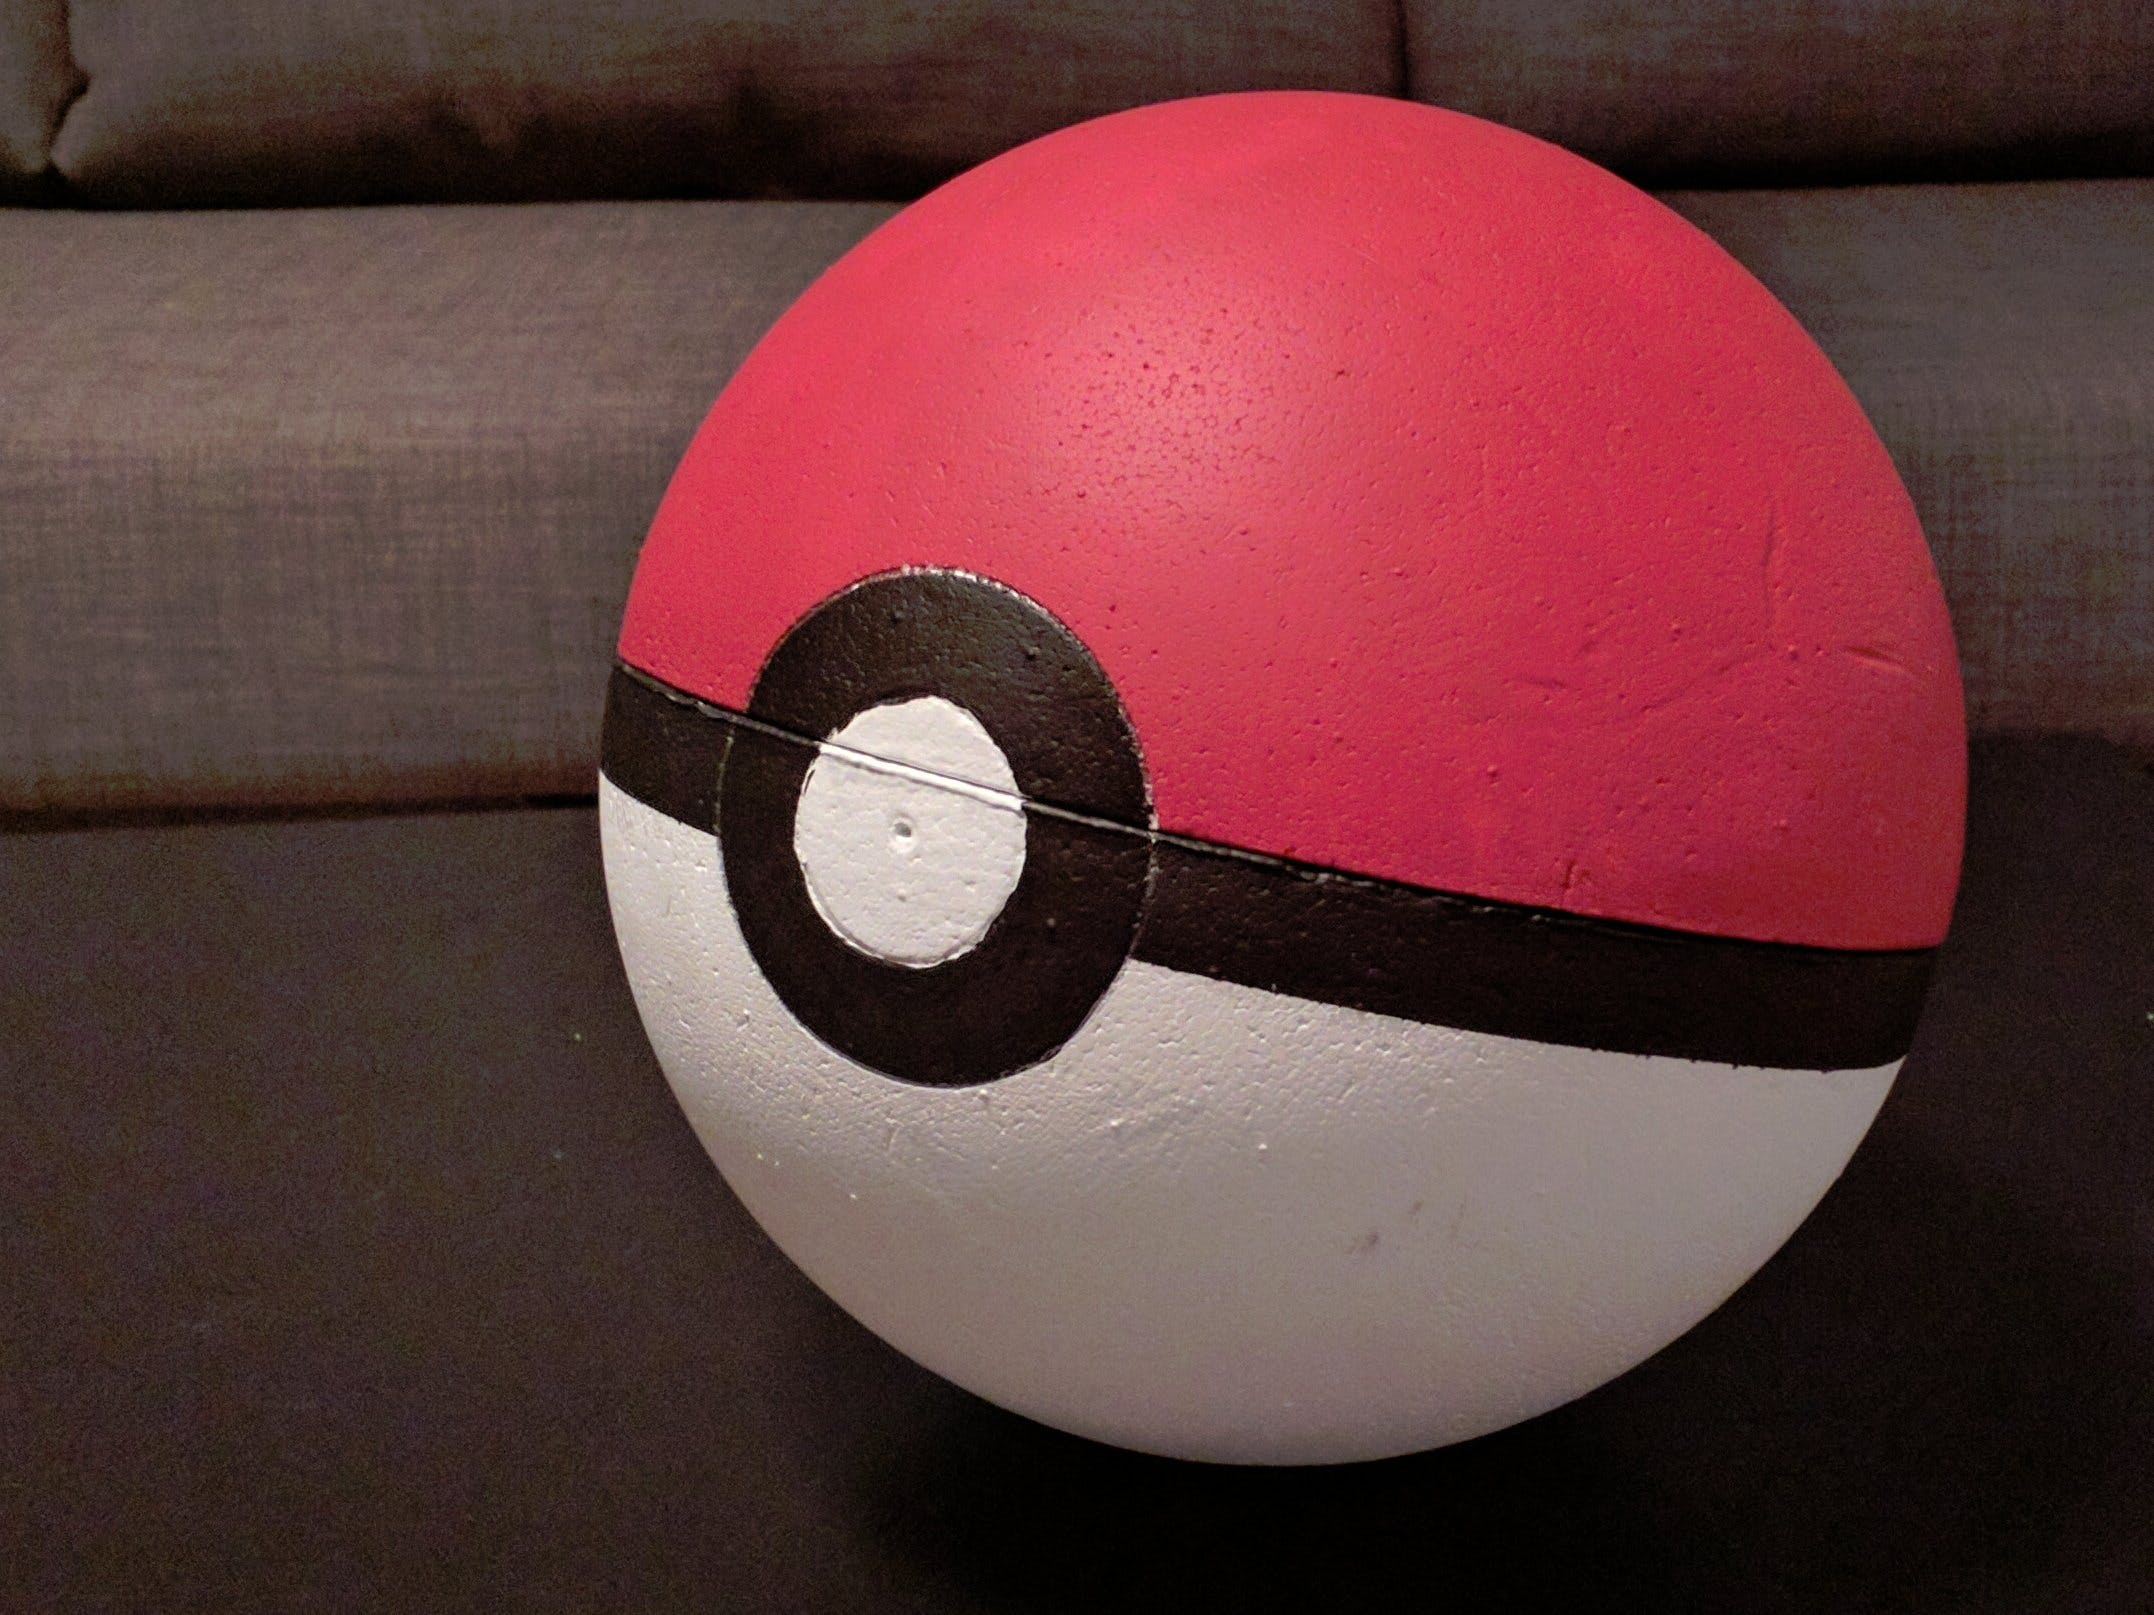 Pokémon detecting Pokéball